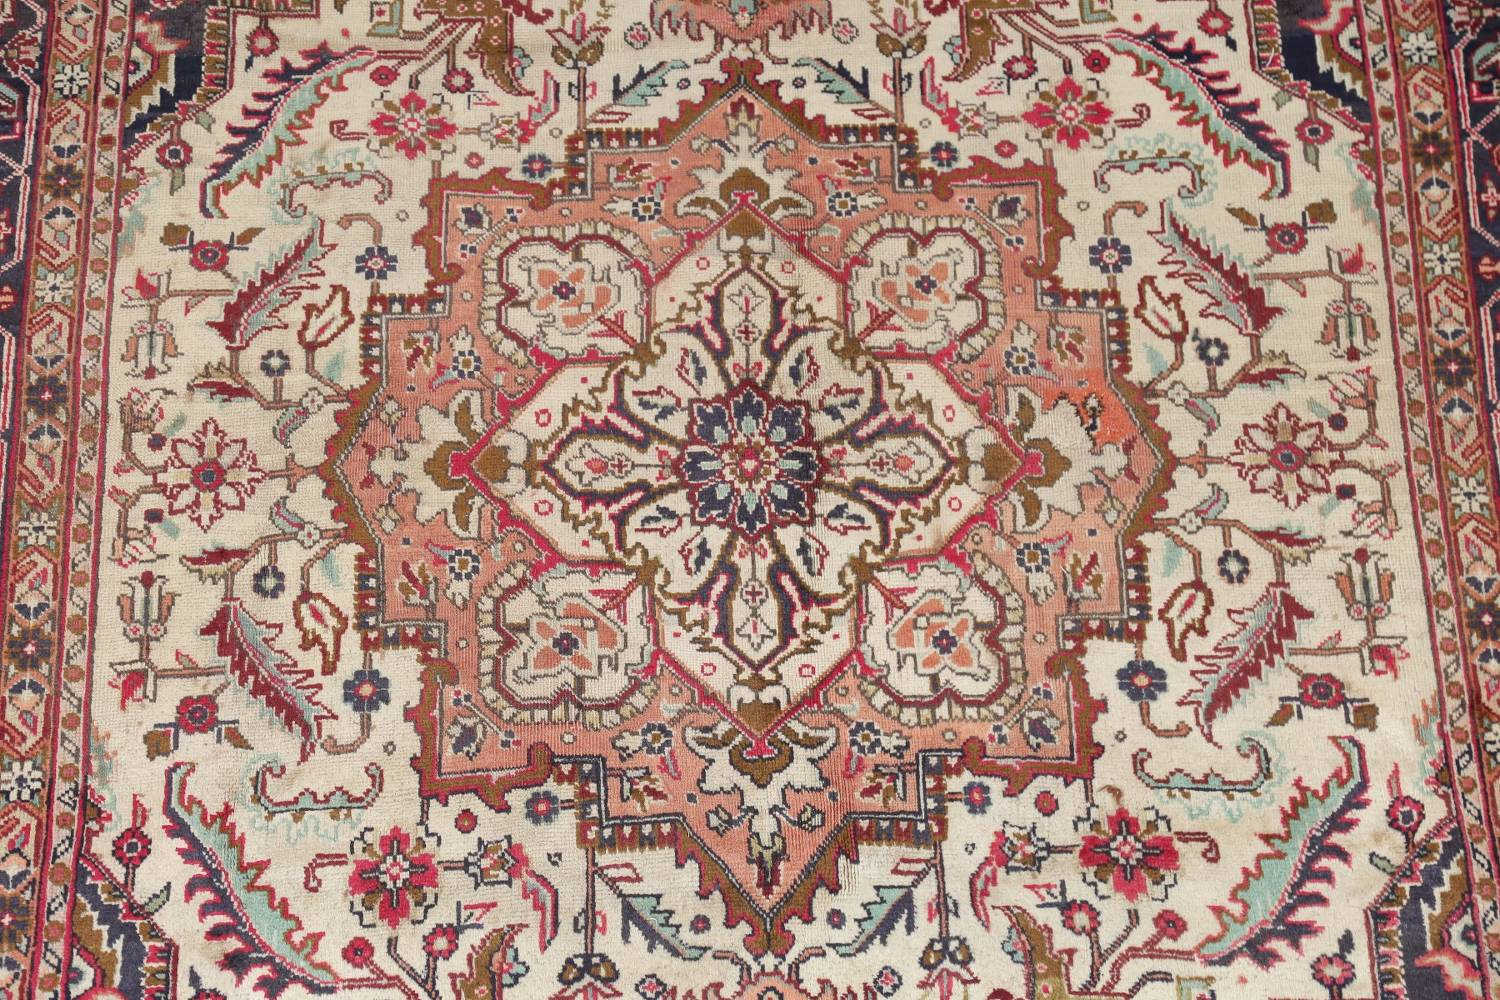 One-of-a-Kind Antique Heriz Serapi Persian Hand-Knotted 7x9 Wool Area Rug image 4